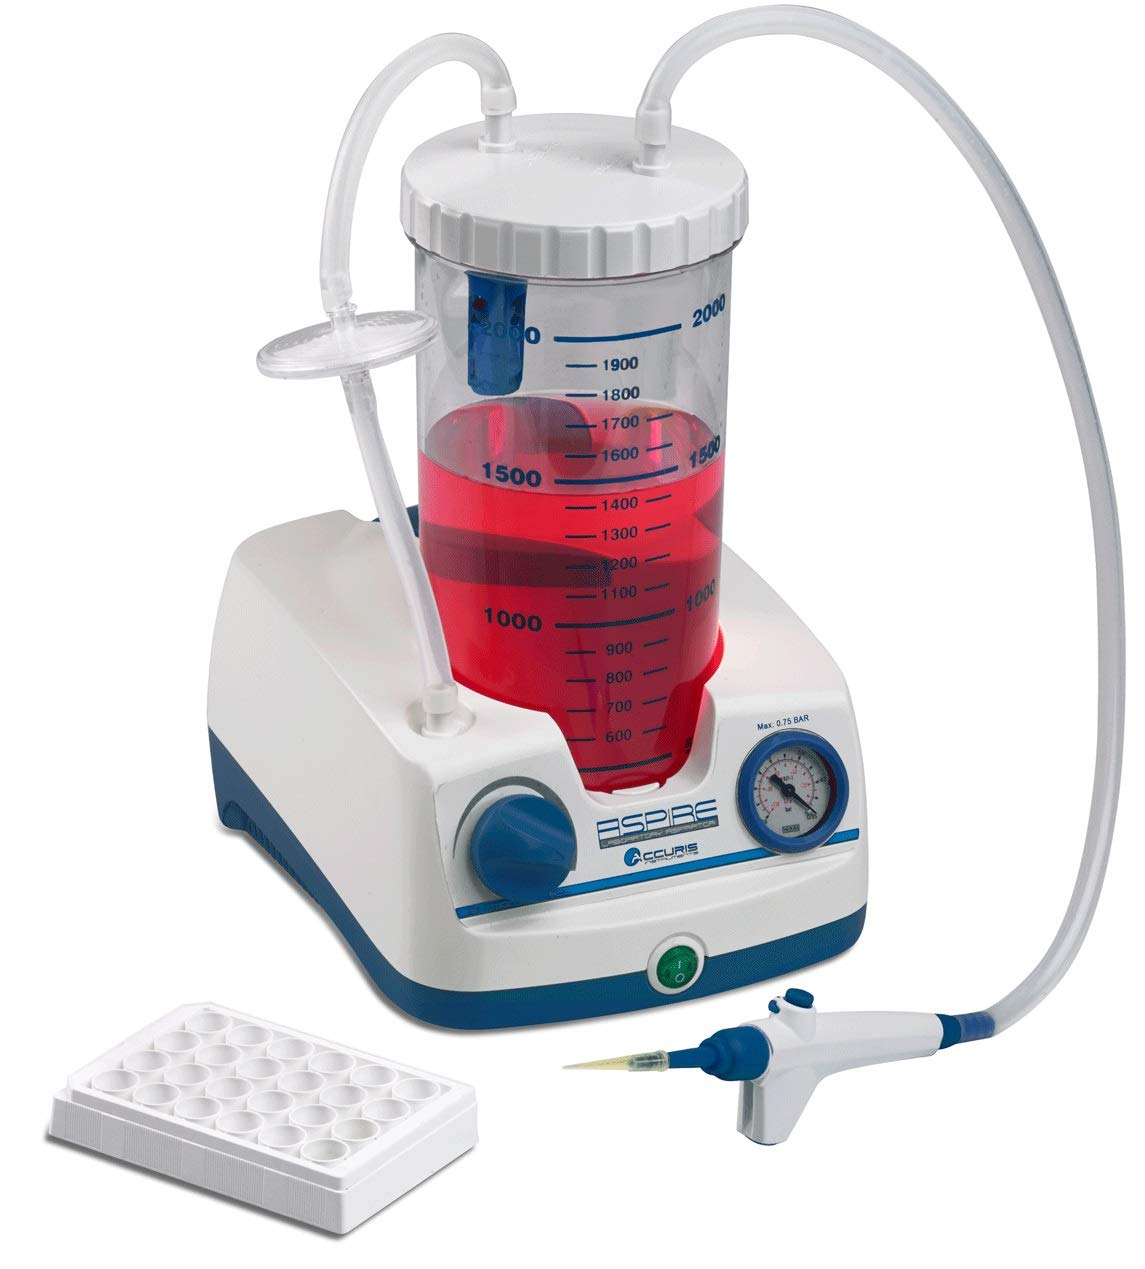 Benchmark Scientific V0020-E Accuris Aspire Laboratory Aspirator with Pump and 2 L Bottle, Handheld Vacuum Controller, 230V